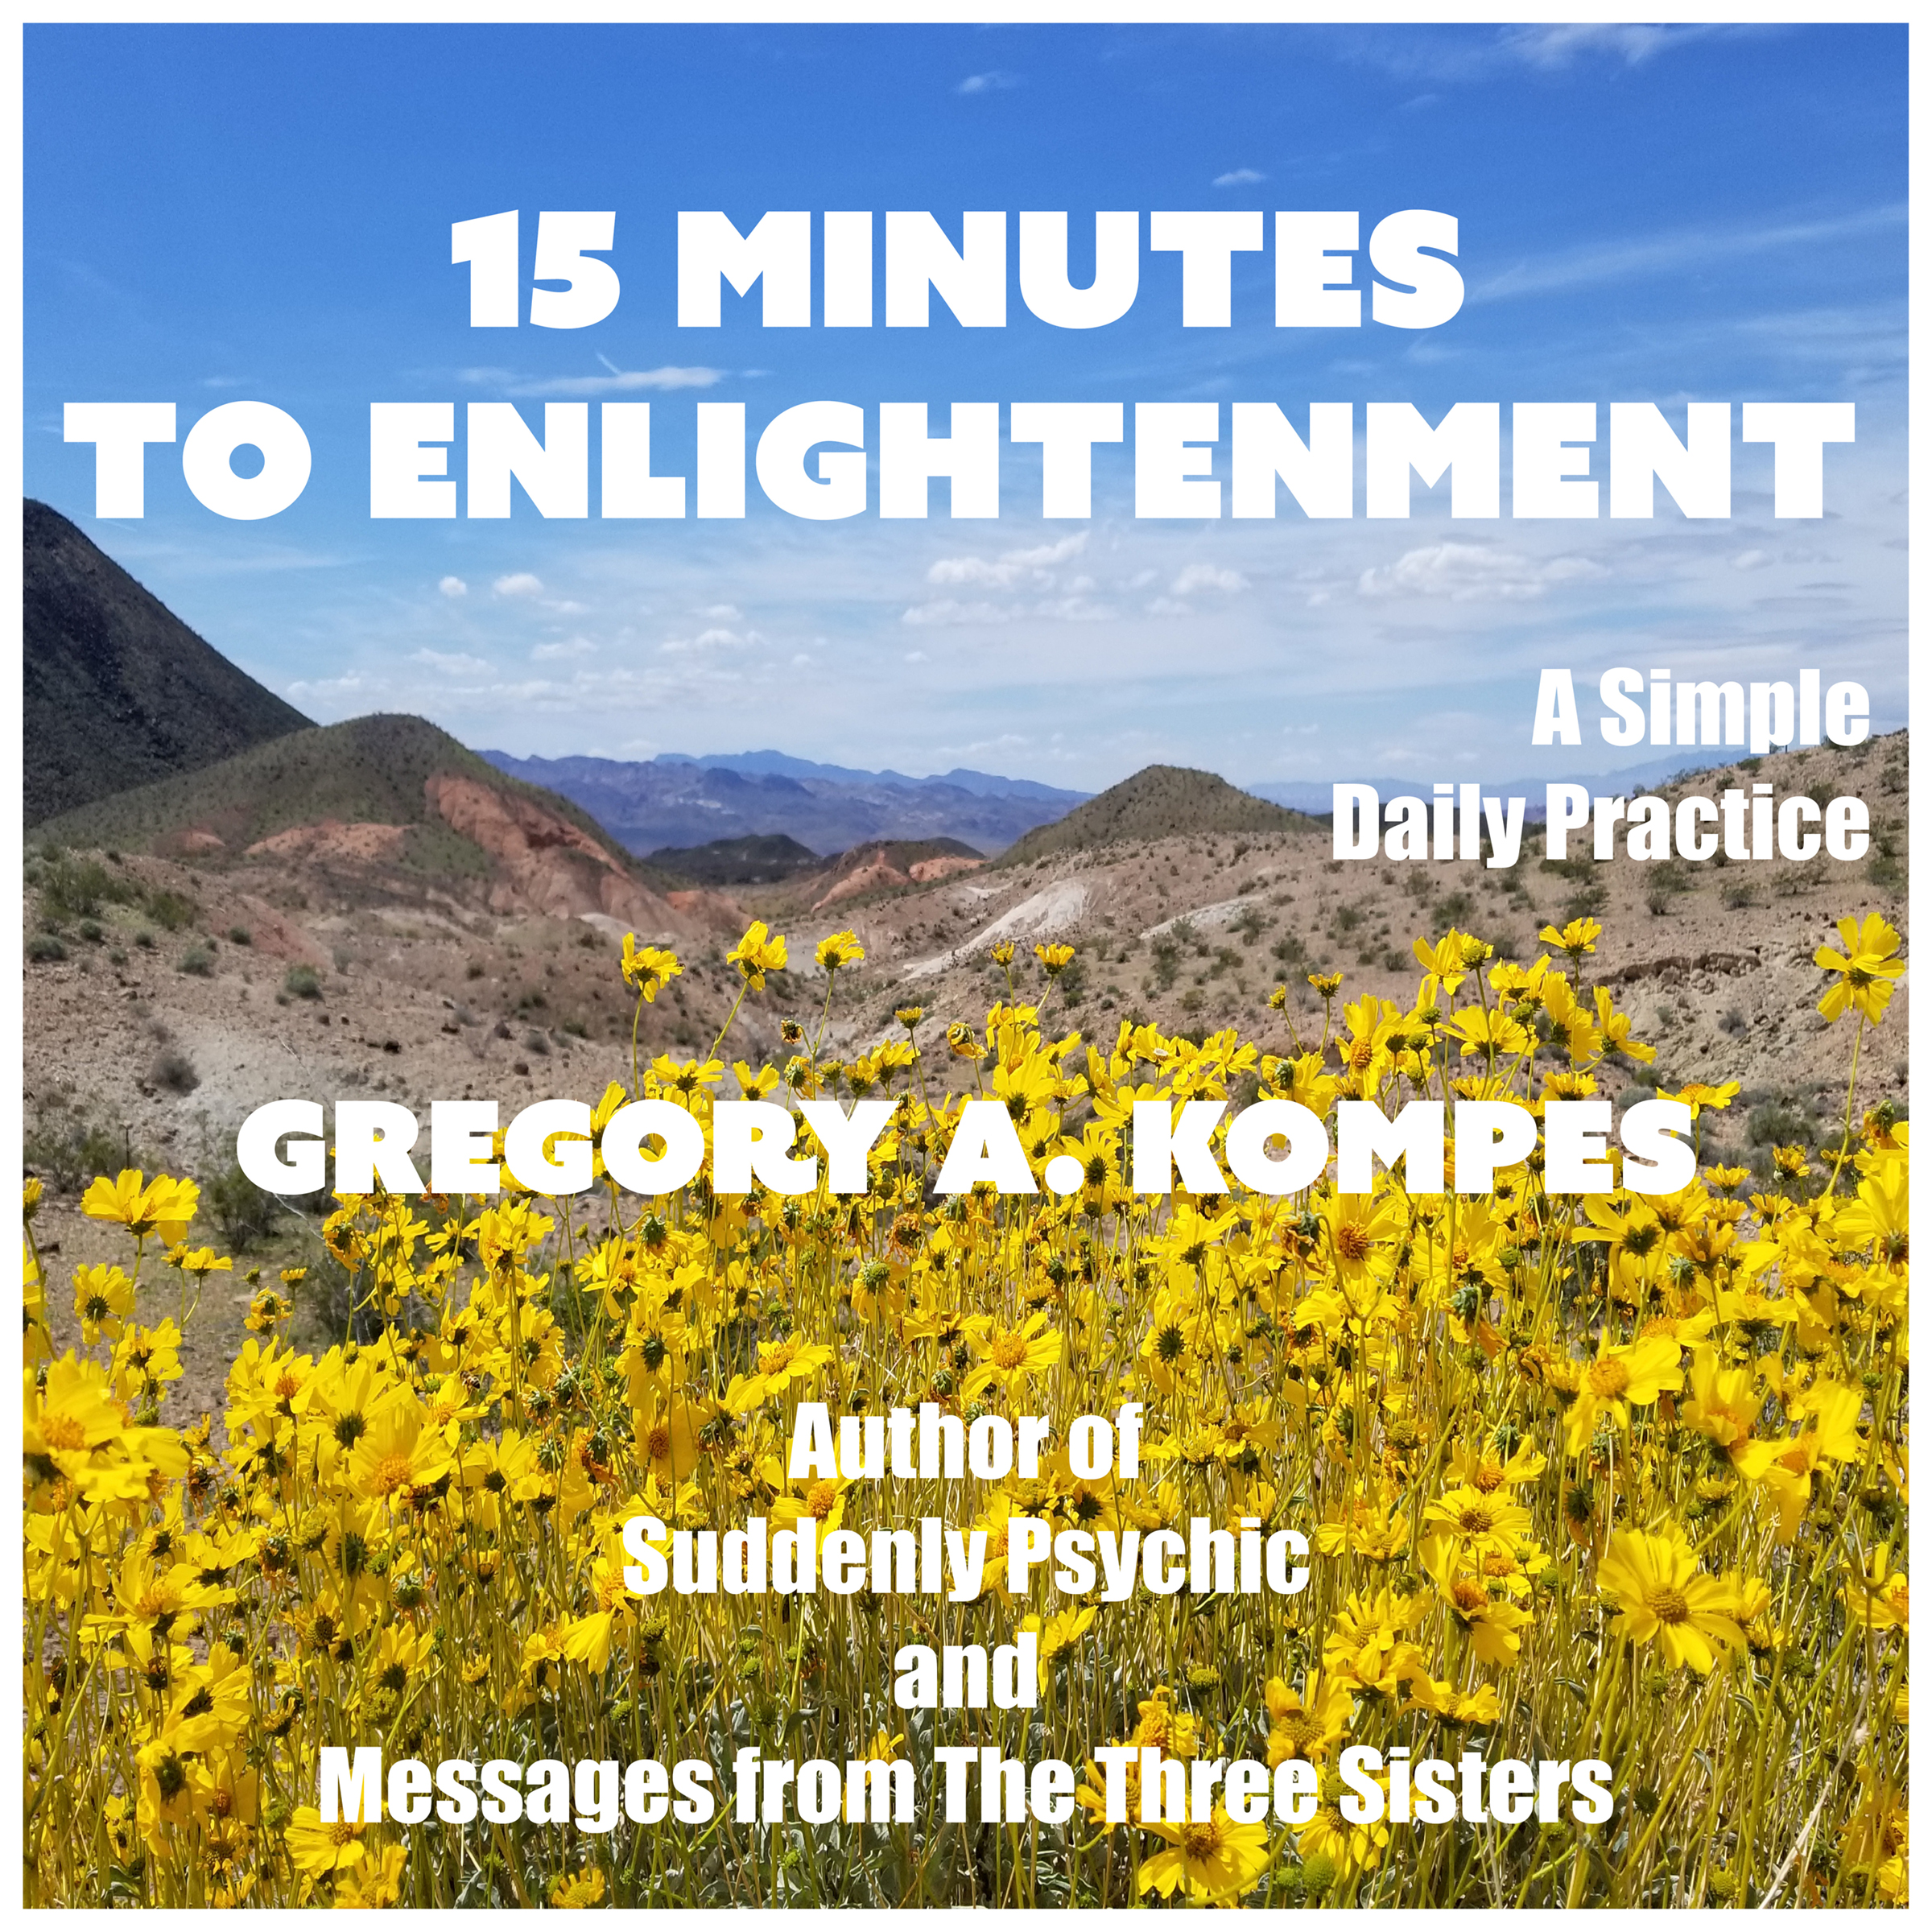 15 Minutes to Enlightenment cover image